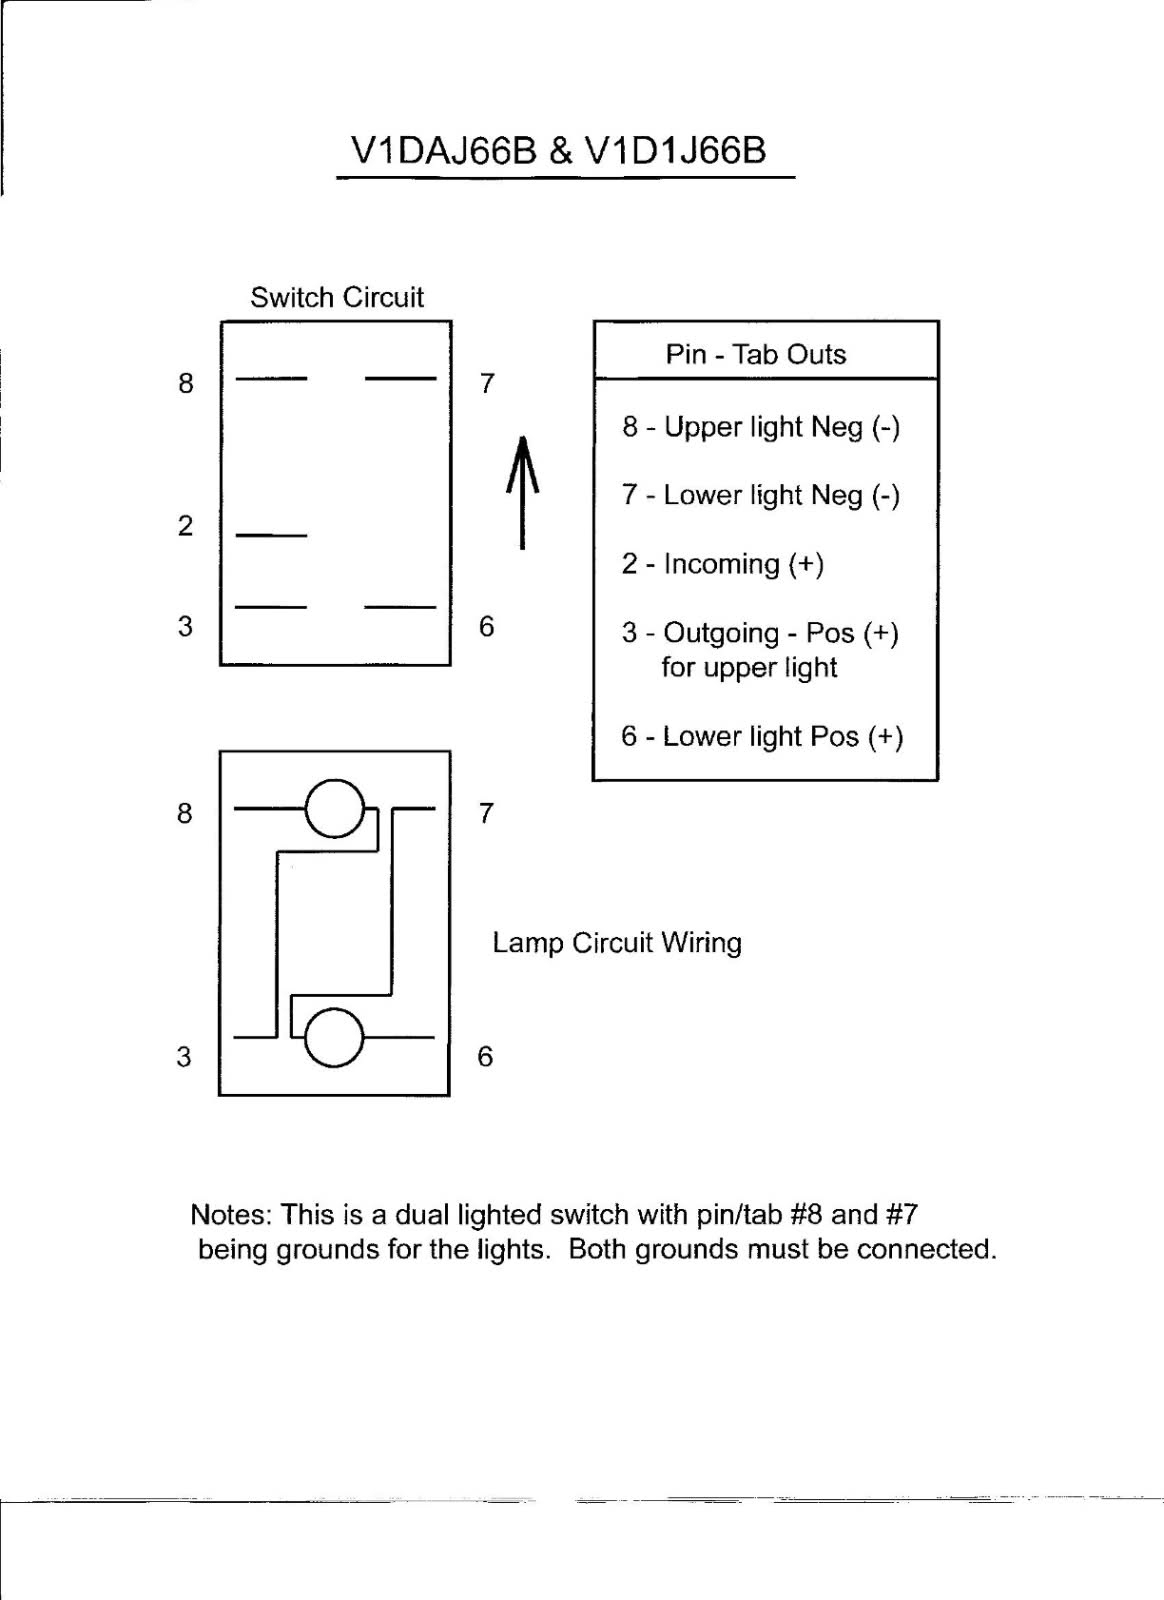 Illuminated Rocker Switch Wiring Diagram | Wiring Diagram - 5 Pin Rocker Switch Wiring Diagram